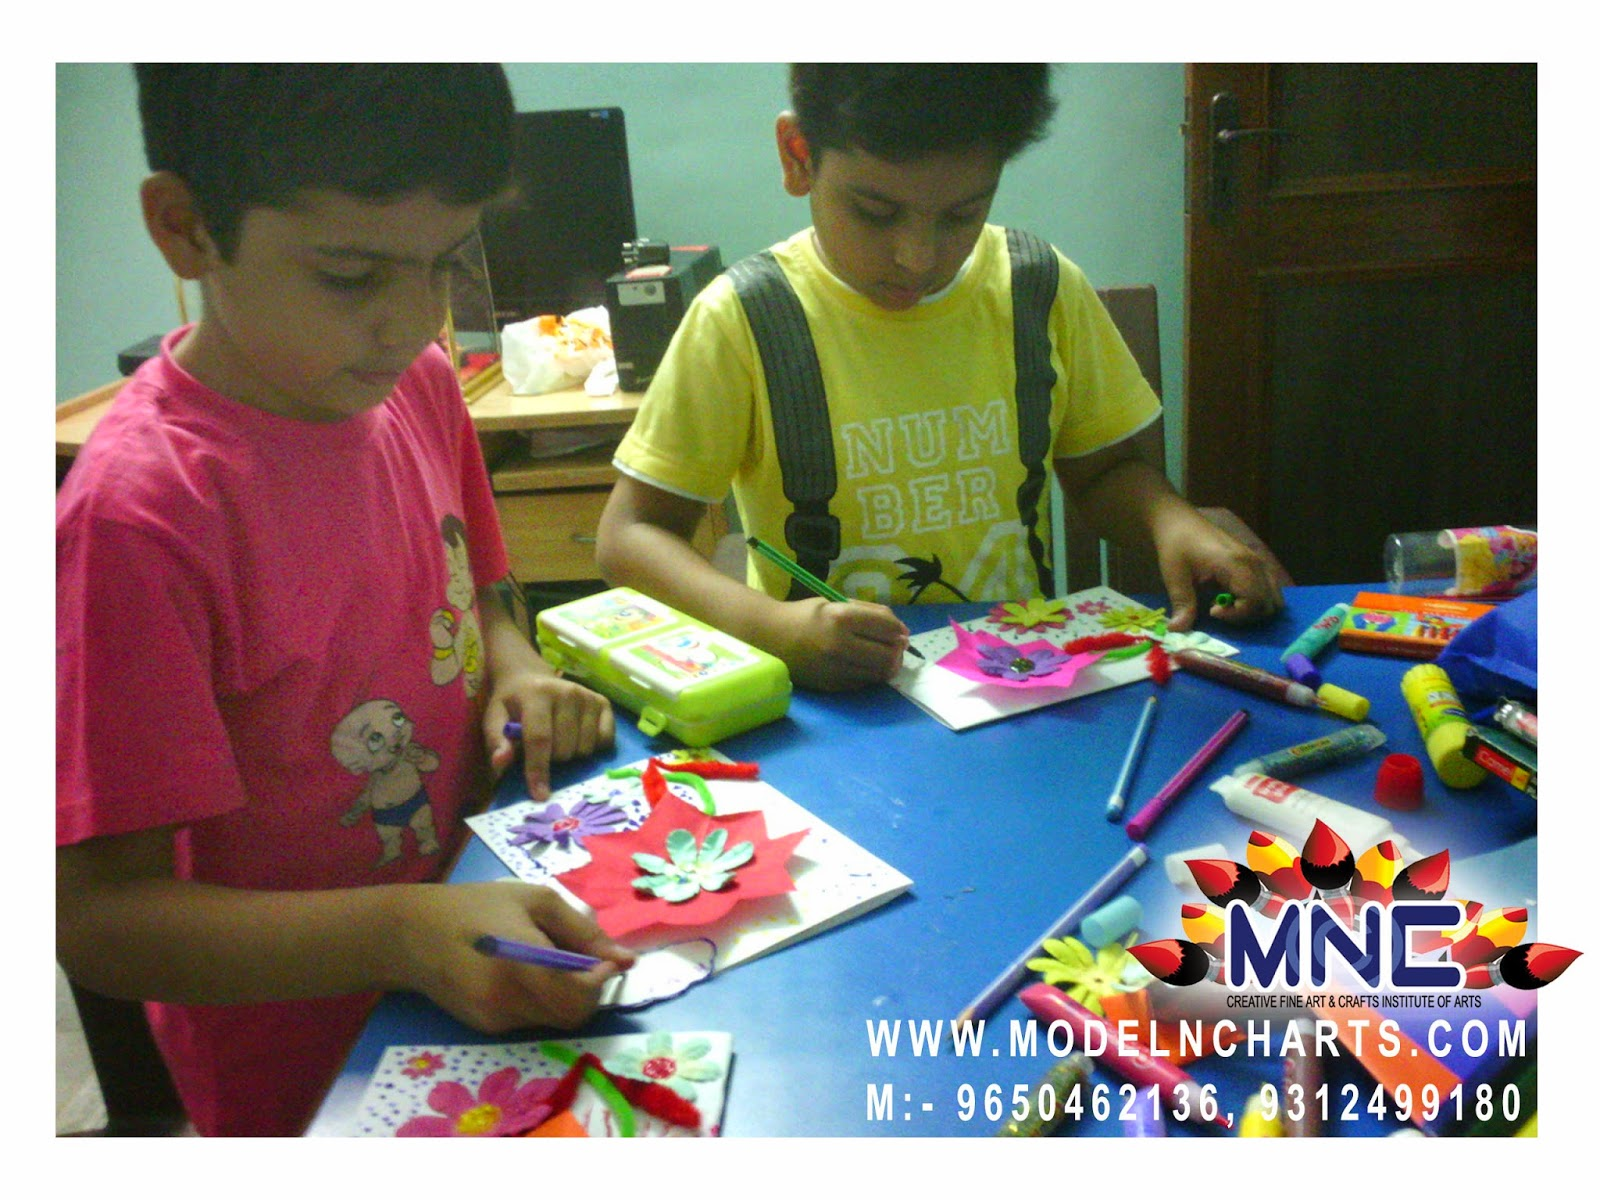 Home Tuition Home Classes Home Tutor For Kids Adults Art And